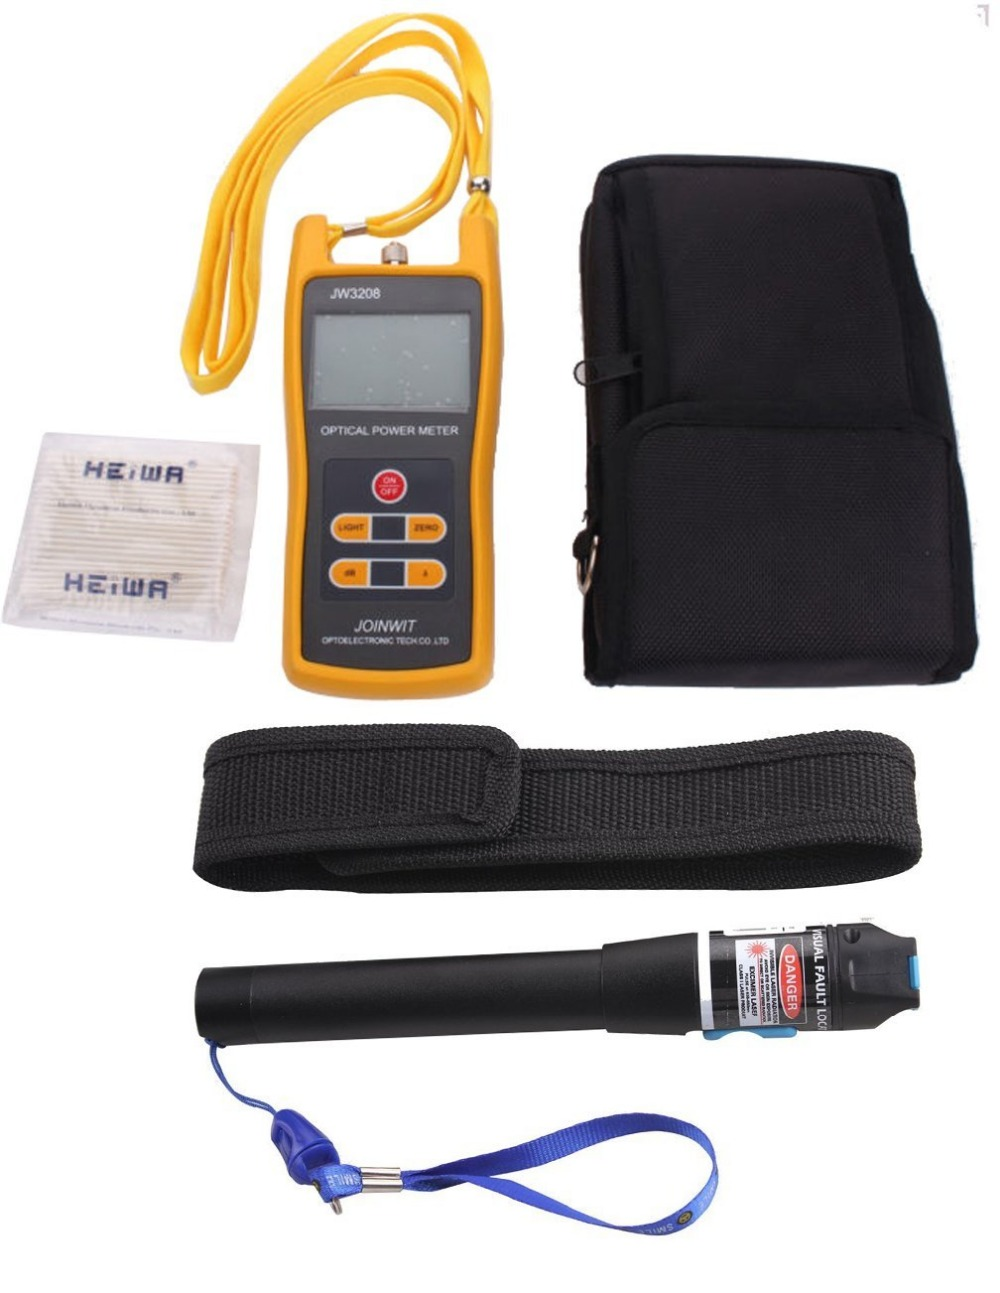 20mW Visual Fault Locator Fiber Optic Cable Tester Optical Laser Source &Handheld Optical Power Meter Tester -50 to26dB